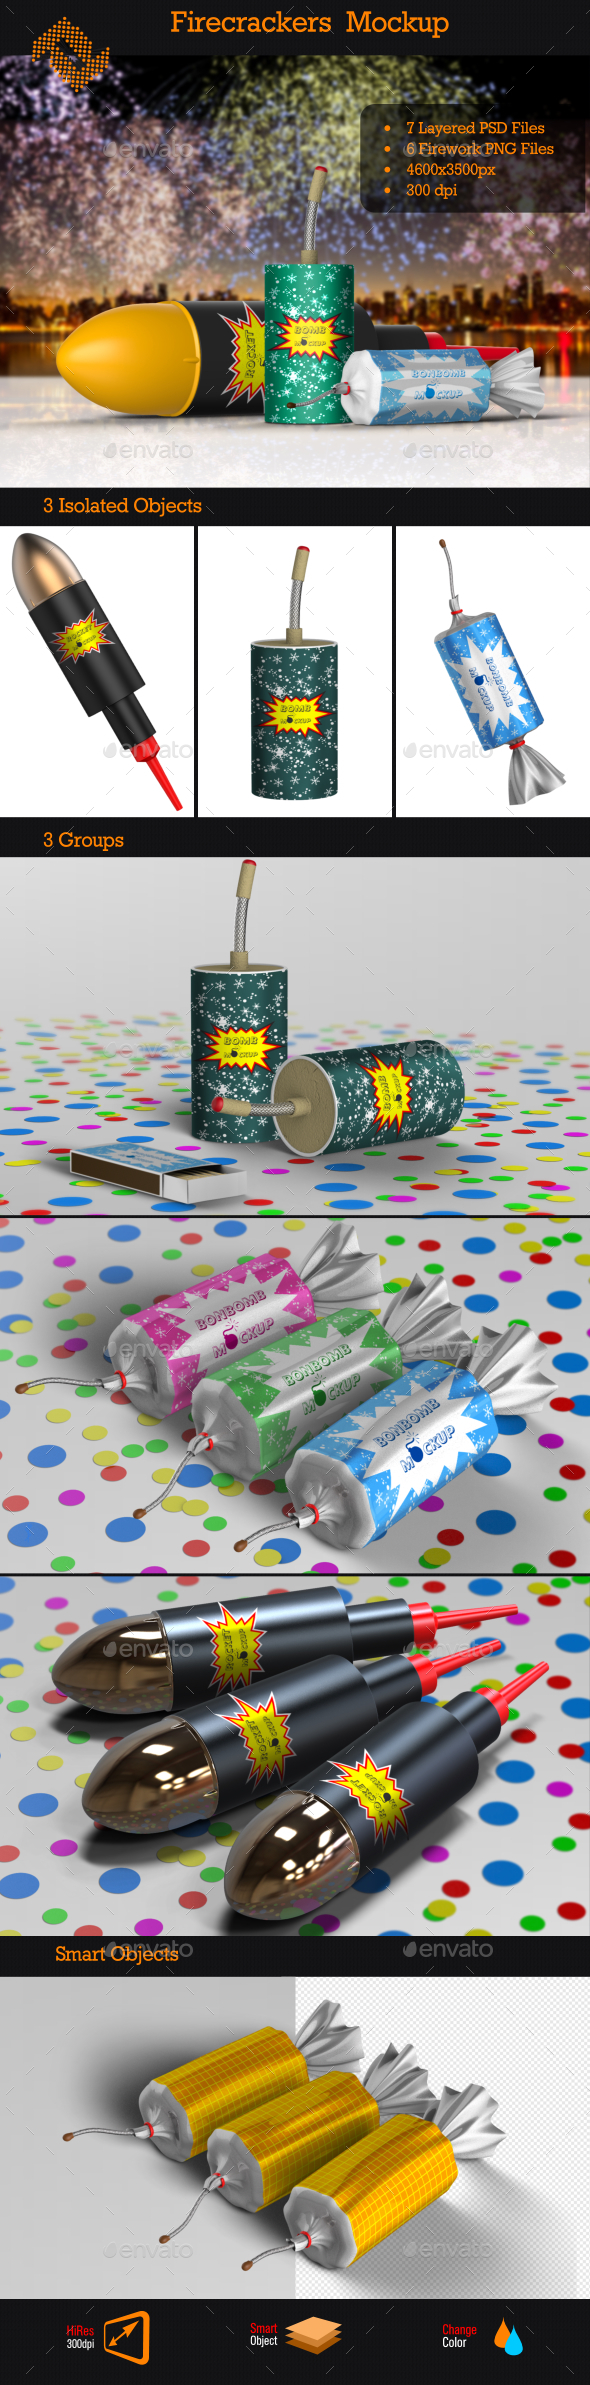 Firecrackers / Fireworks Mockup - Miscellaneous Packaging